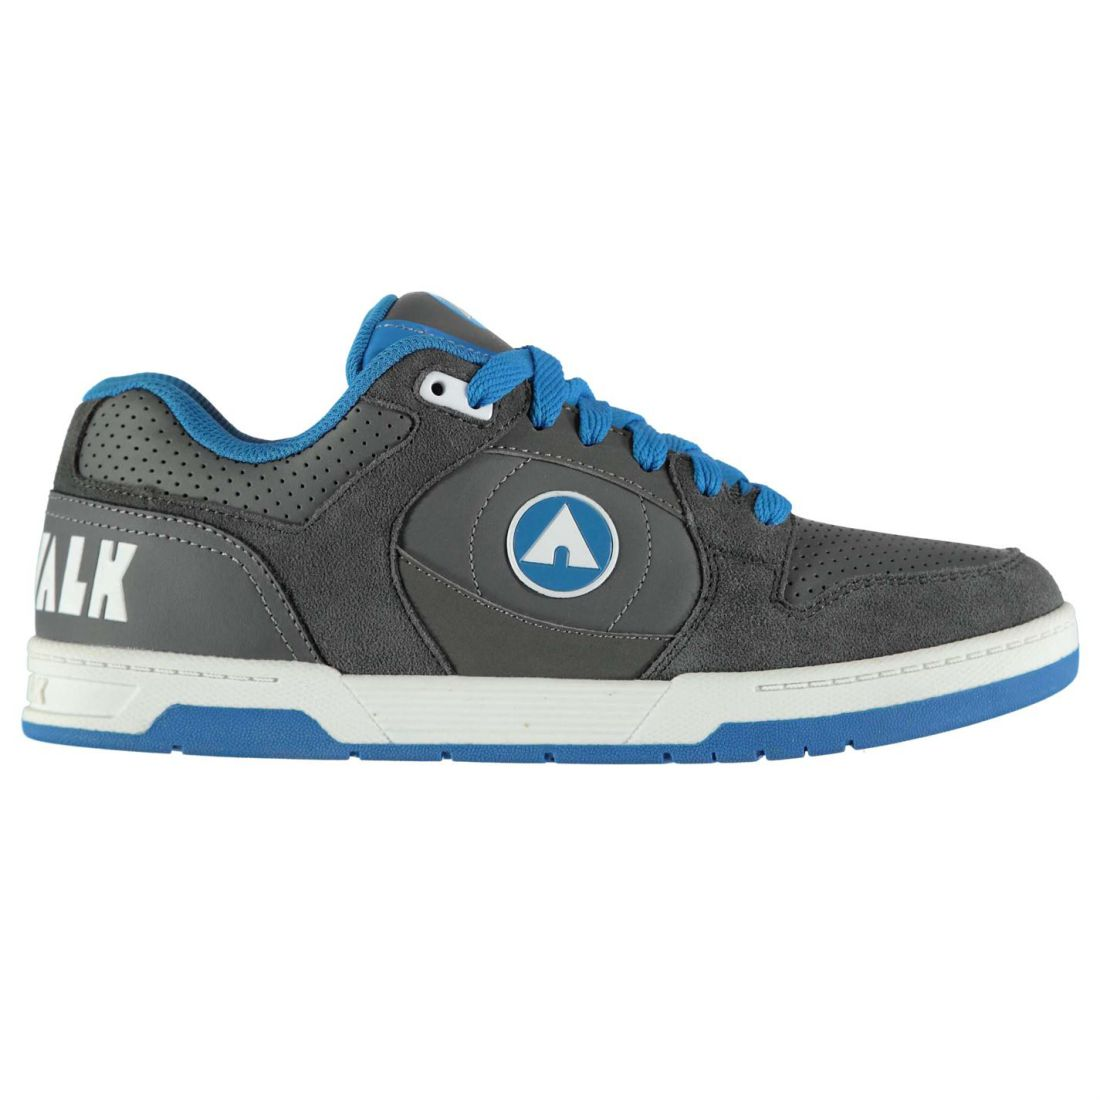 Airwalk Mens Throttle Skate Shoes Low Top Fashion Trainers Lace Up ... b56dbd39a7d2